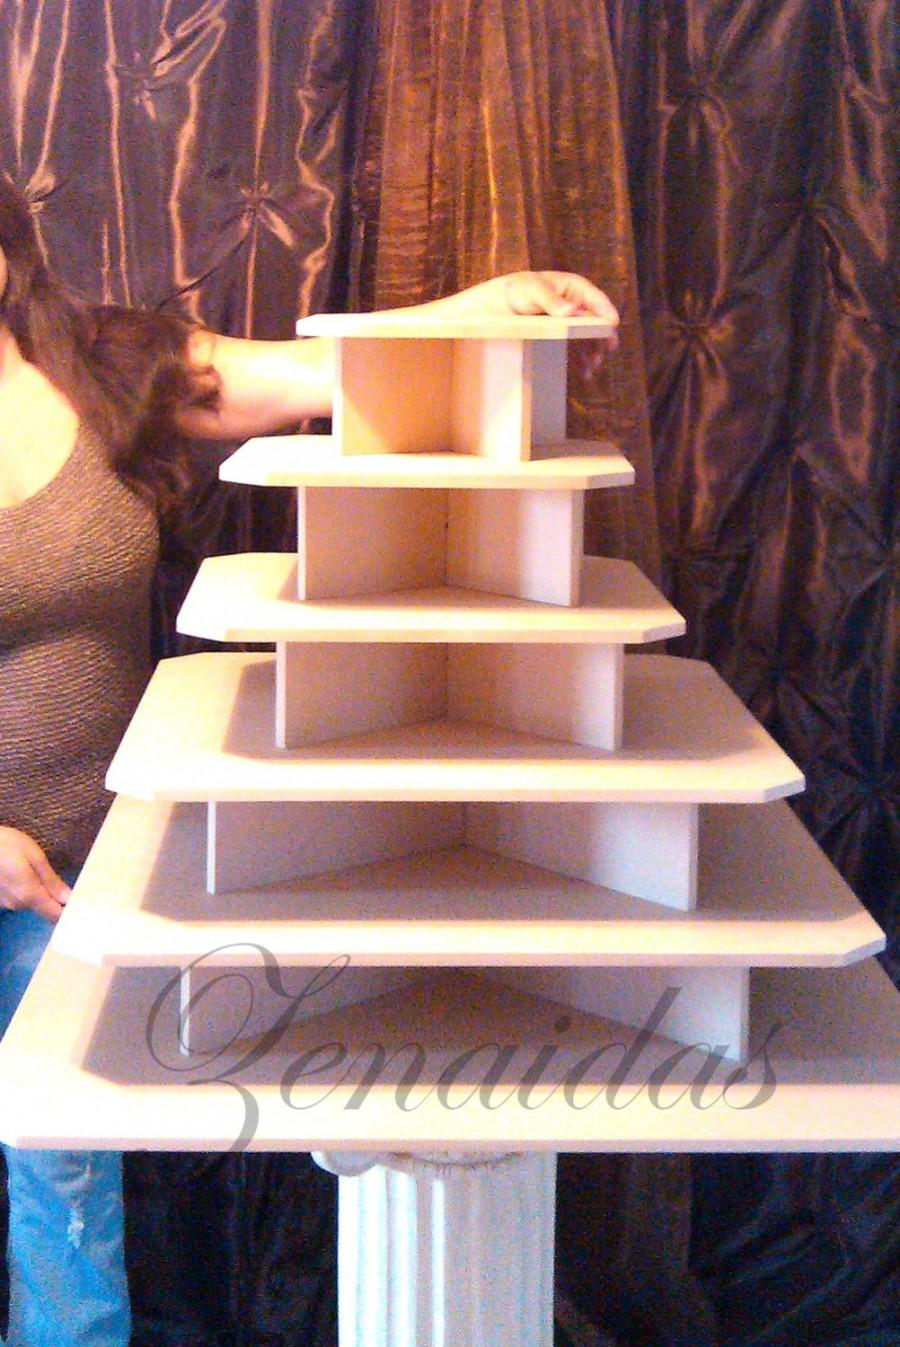 Cupcake Stand XX Large 275 Cupcakes MDF Wood Threaded Rod And Freestanding  Style Cupcake Tower Stand Wedding Stand DIY Project